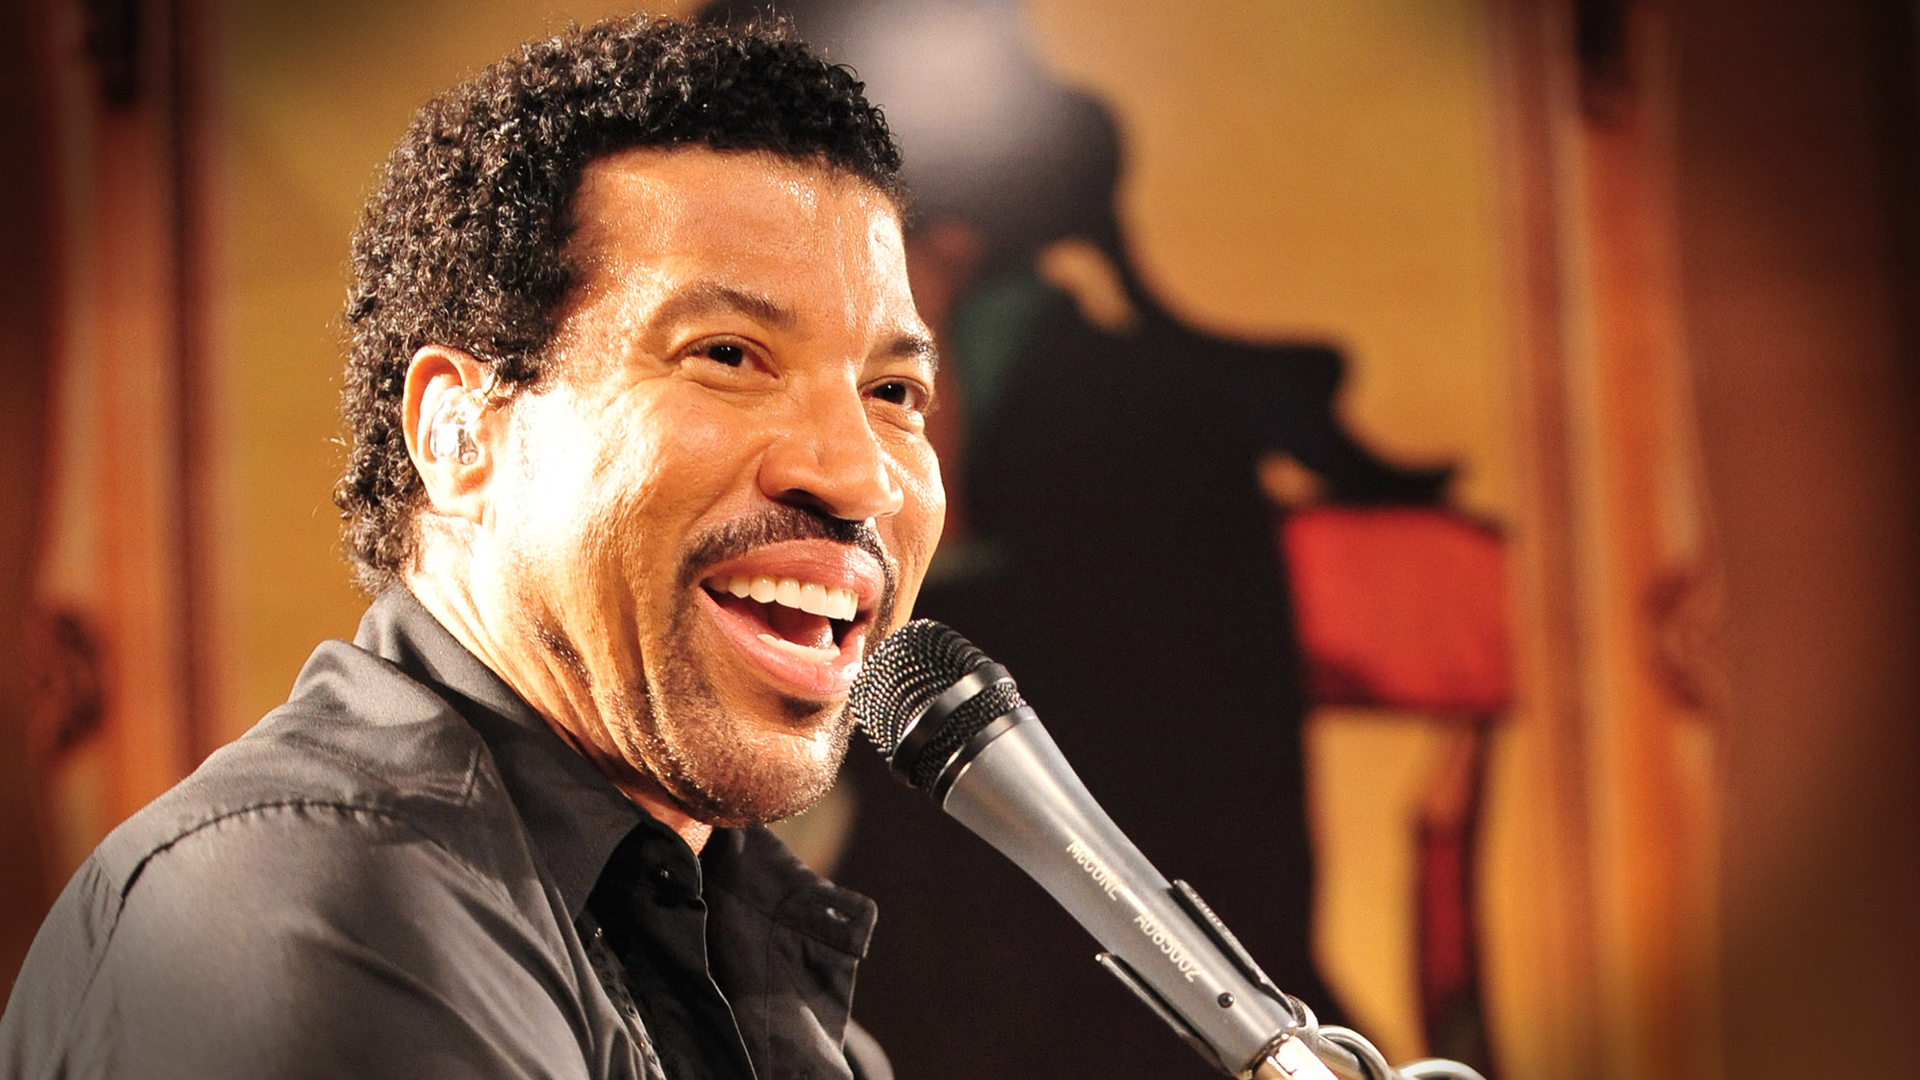 Lionel Richie earned a  million dollar salary - leaving the net worth at 200 million in 2018